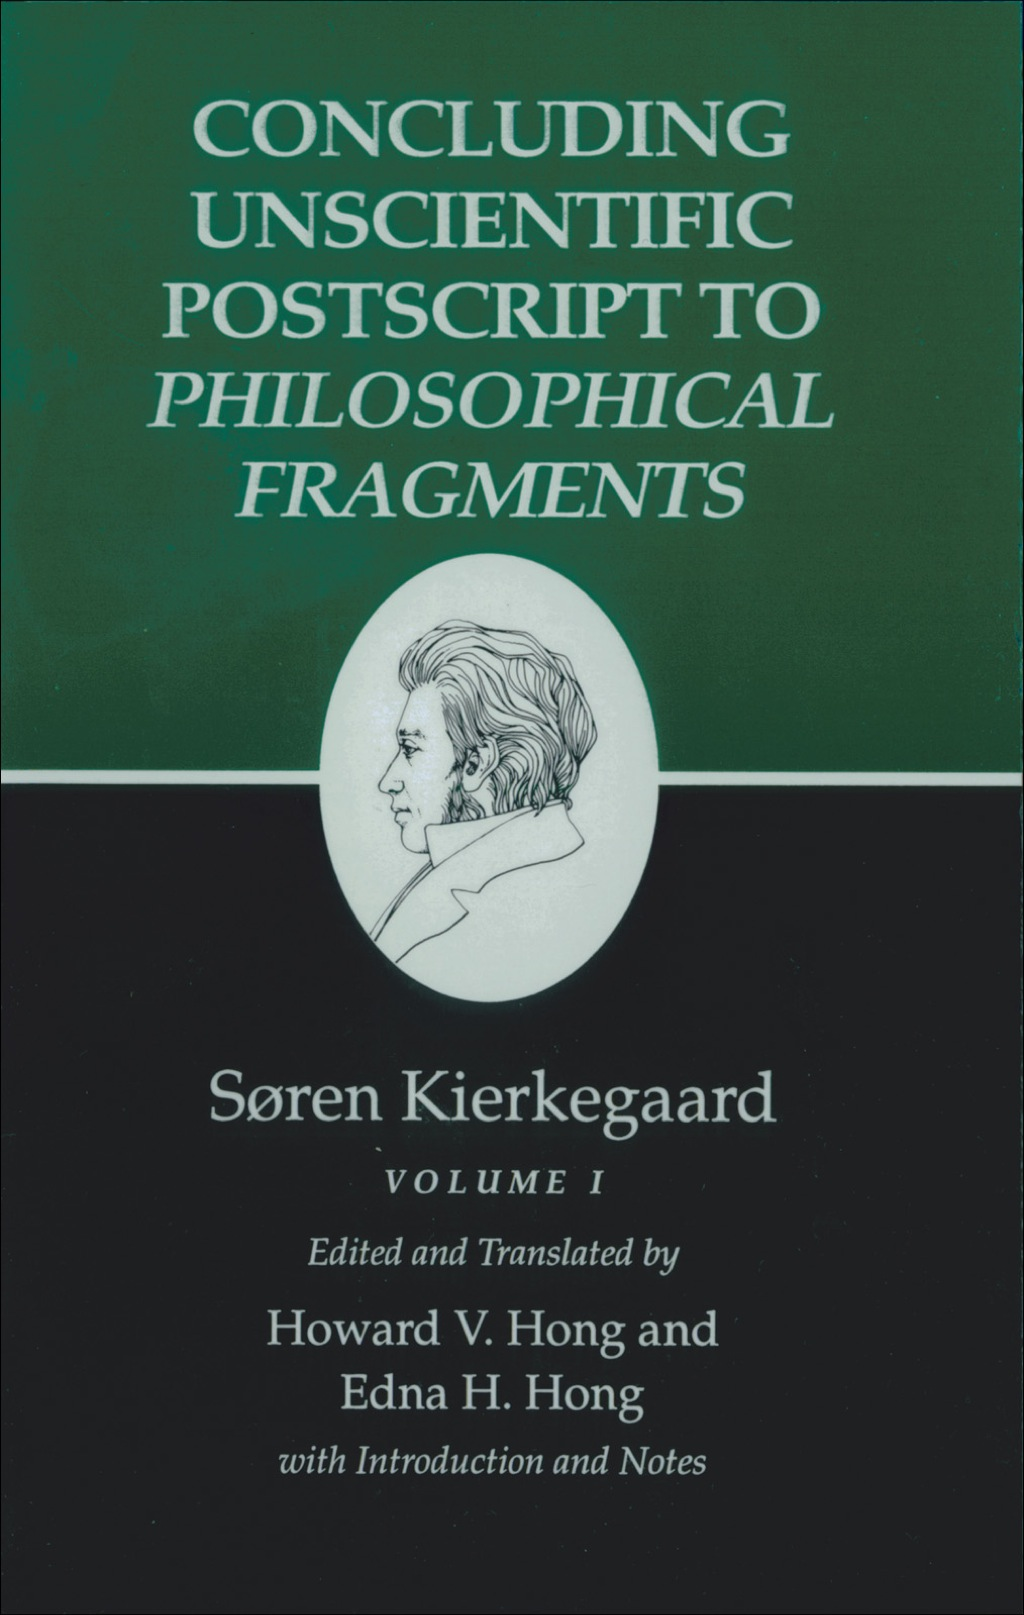 Kierkegaard's Writings, XII, Volume I: Concluding Unscientific Postscript to Philosophical Fragments (ebook) eBooks